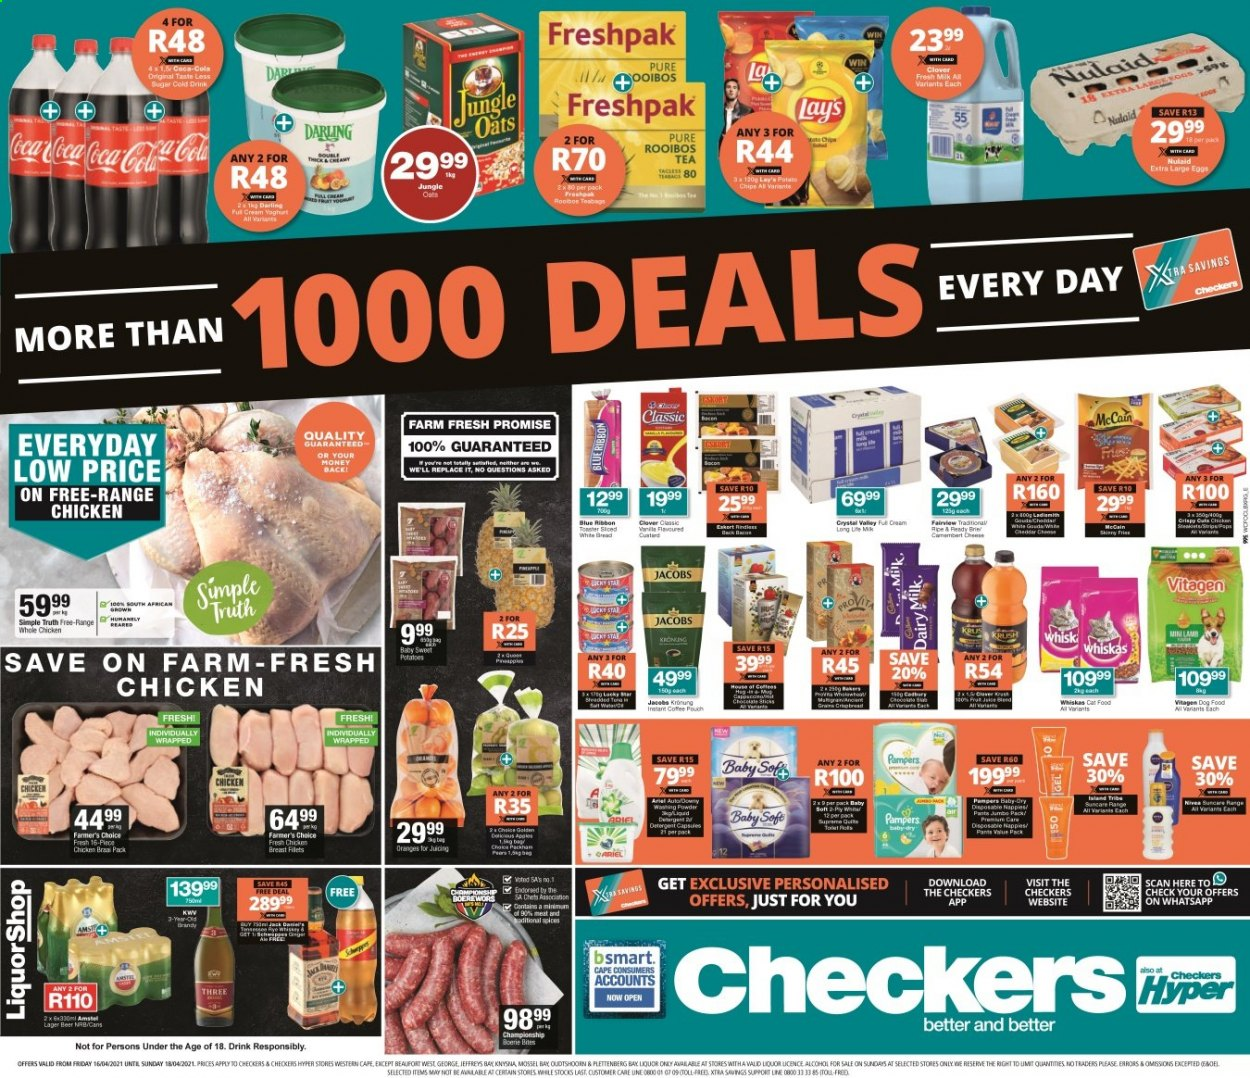 Checkers catalogue  - 04.16.2021 - 04.18.2021 - Sales products - bread, white bread, pears, orange, gouda, yoghurt, Clover, large eggs, Blue Ribbon, Dairy Milk, chips, Lay's, oats, jungle oats, Coca-Cola, tea, tea bags, rooibos tea, instant coffee, Jacobs, alcohol, KWV, liquor, beer, whole chicken, chicken breasts, chicken meat, Pampers, nappies, Nivea, Ariel, XTRA, animal food, cat food, dog food, Whiskas, Bakers, pants. Page 1.